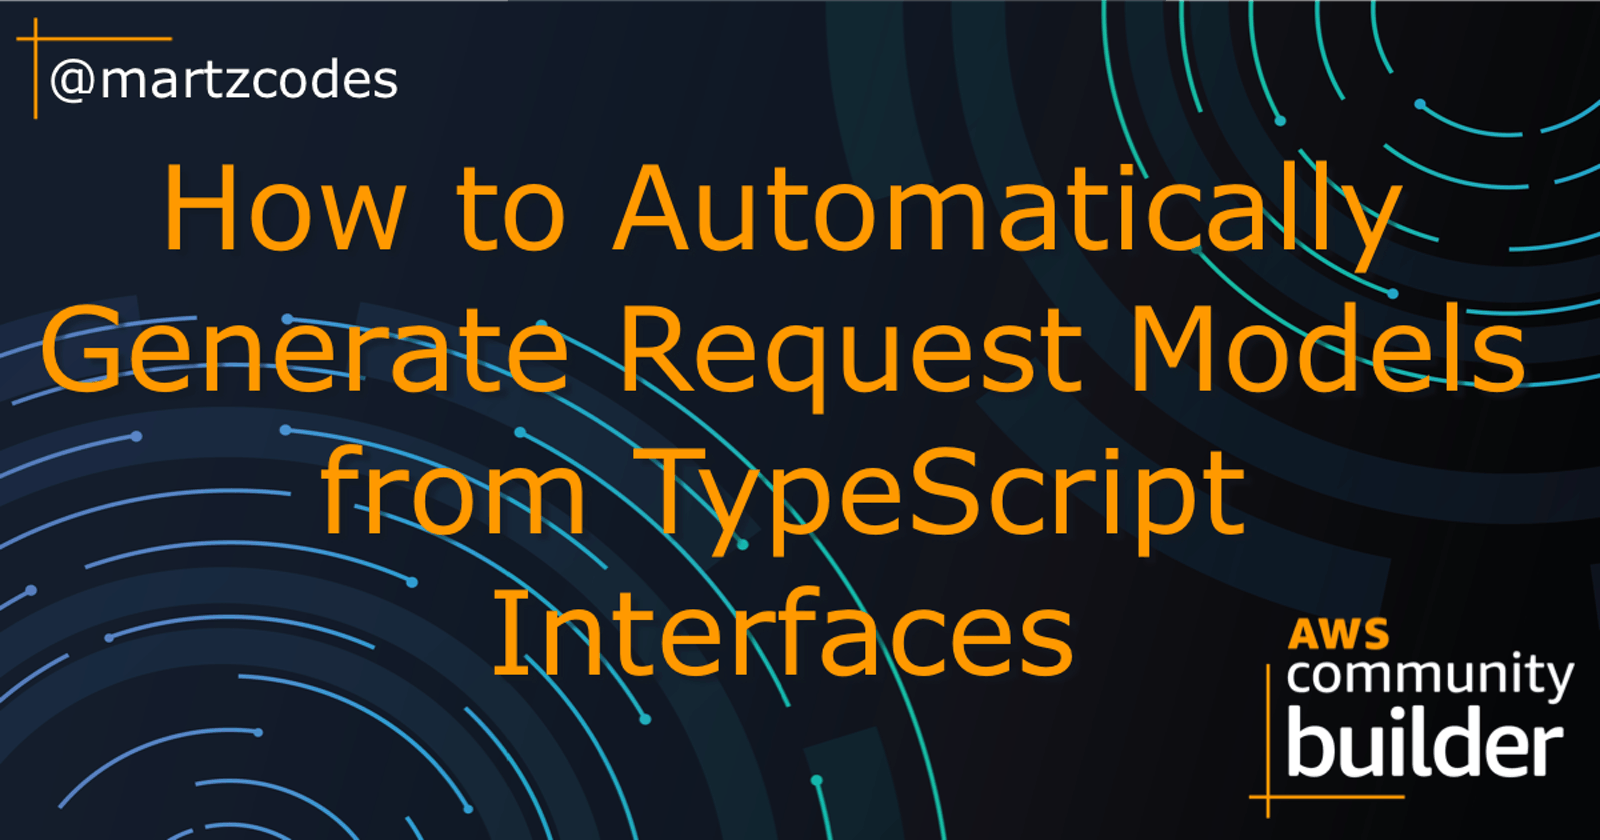 How to Automatically Generate Request Models from TypeScript Interfaces